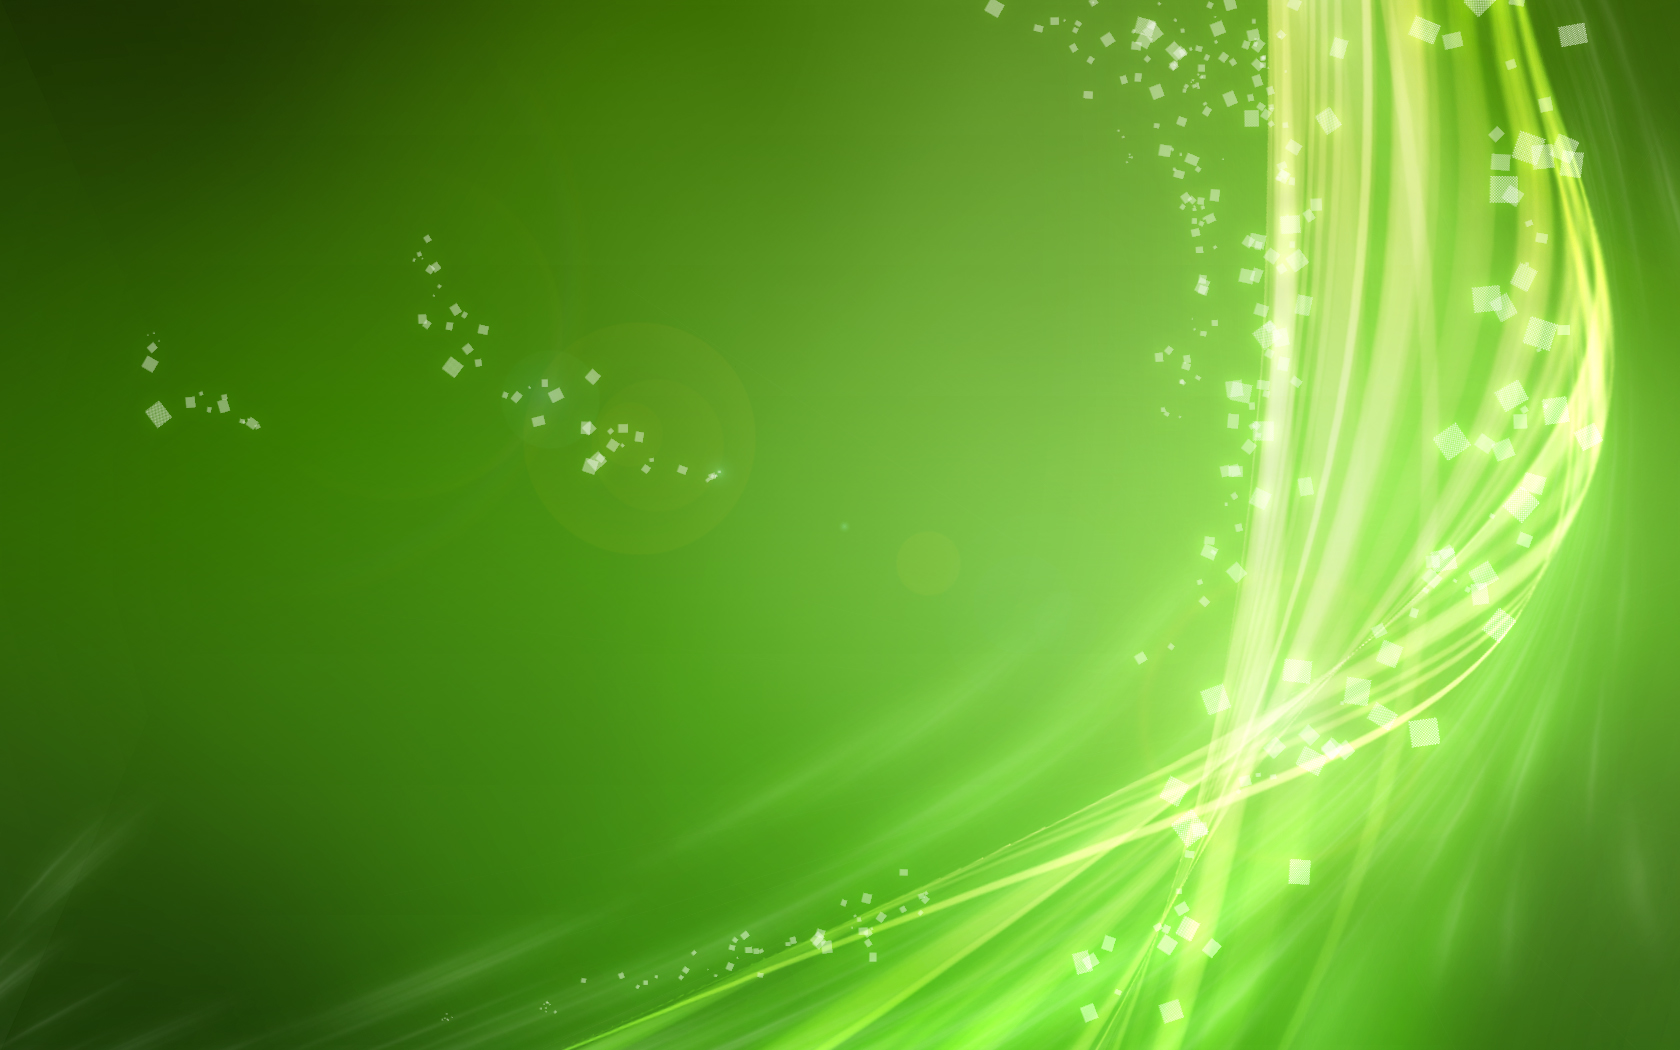 green wallpaper 17327